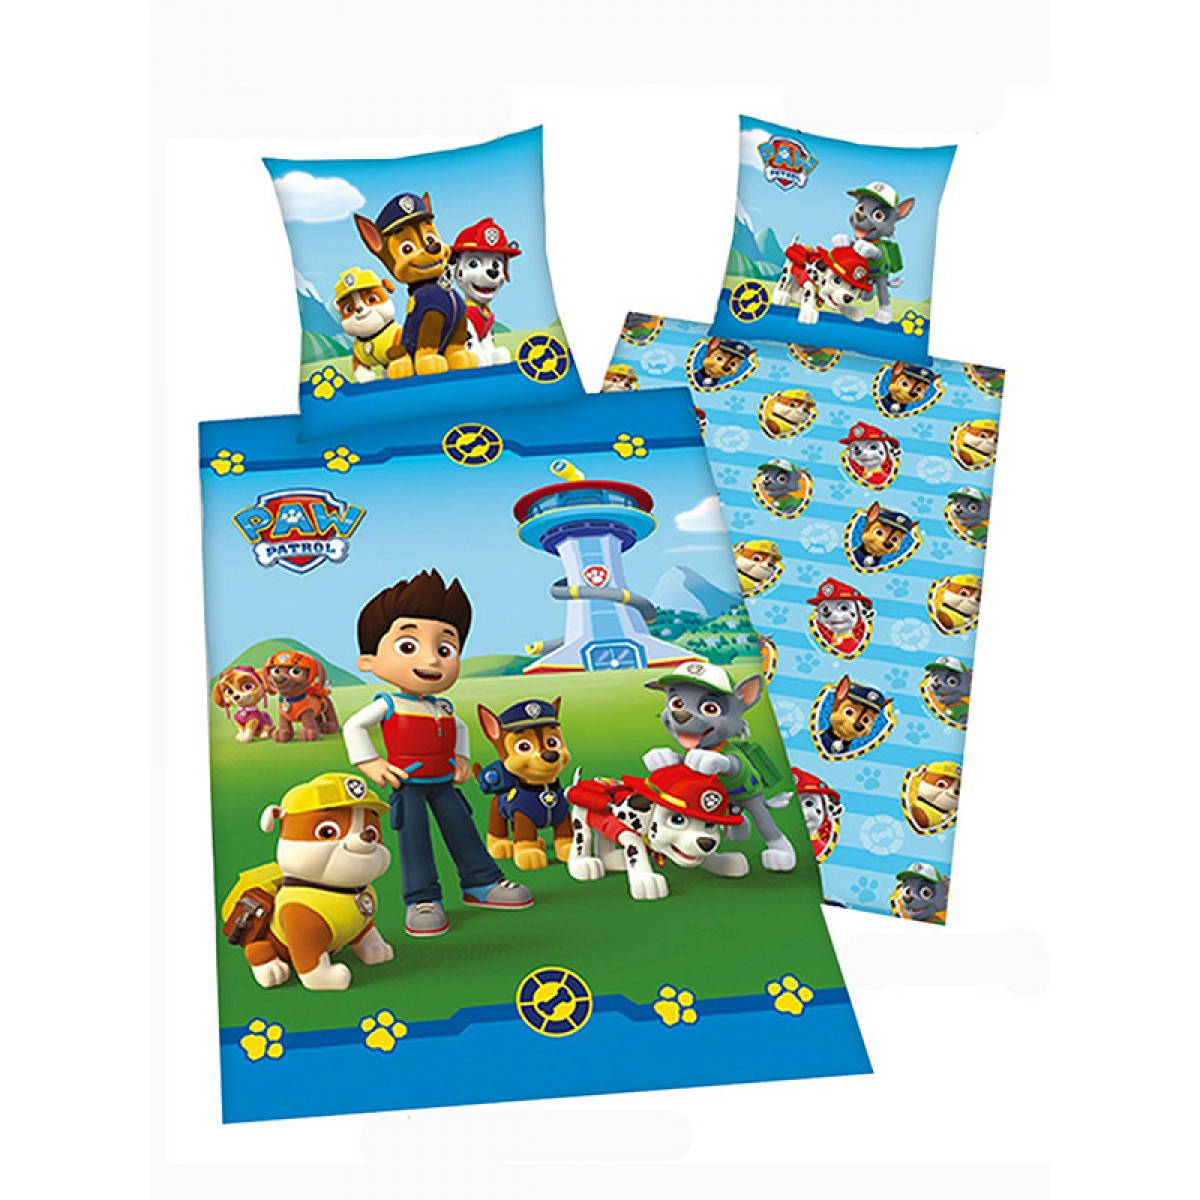 Paw Patrol Bedroom Curtains, Bedding and Kids Wallpaper